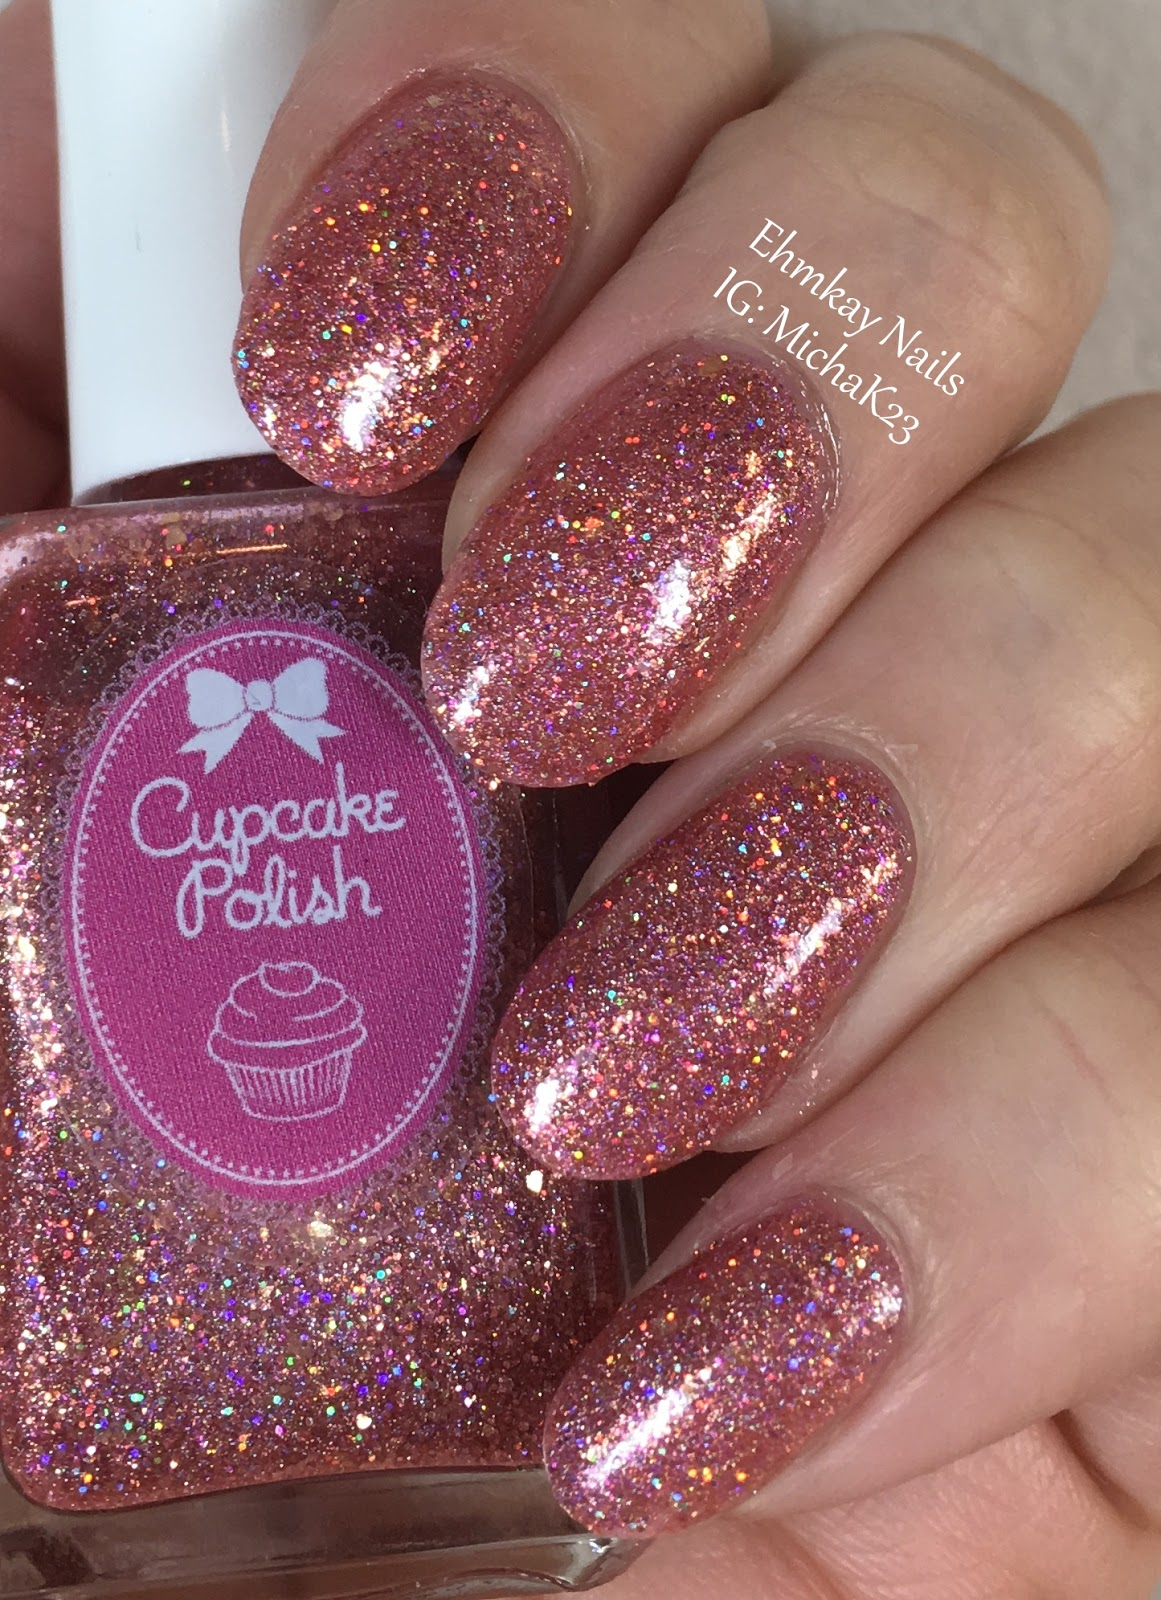 Ehmkay nails valentines day nail art cupcake polish as good as valentines day nail art cupcake polish as good as rose gold and stamping with uberchic beauty prinsesfo Choice Image